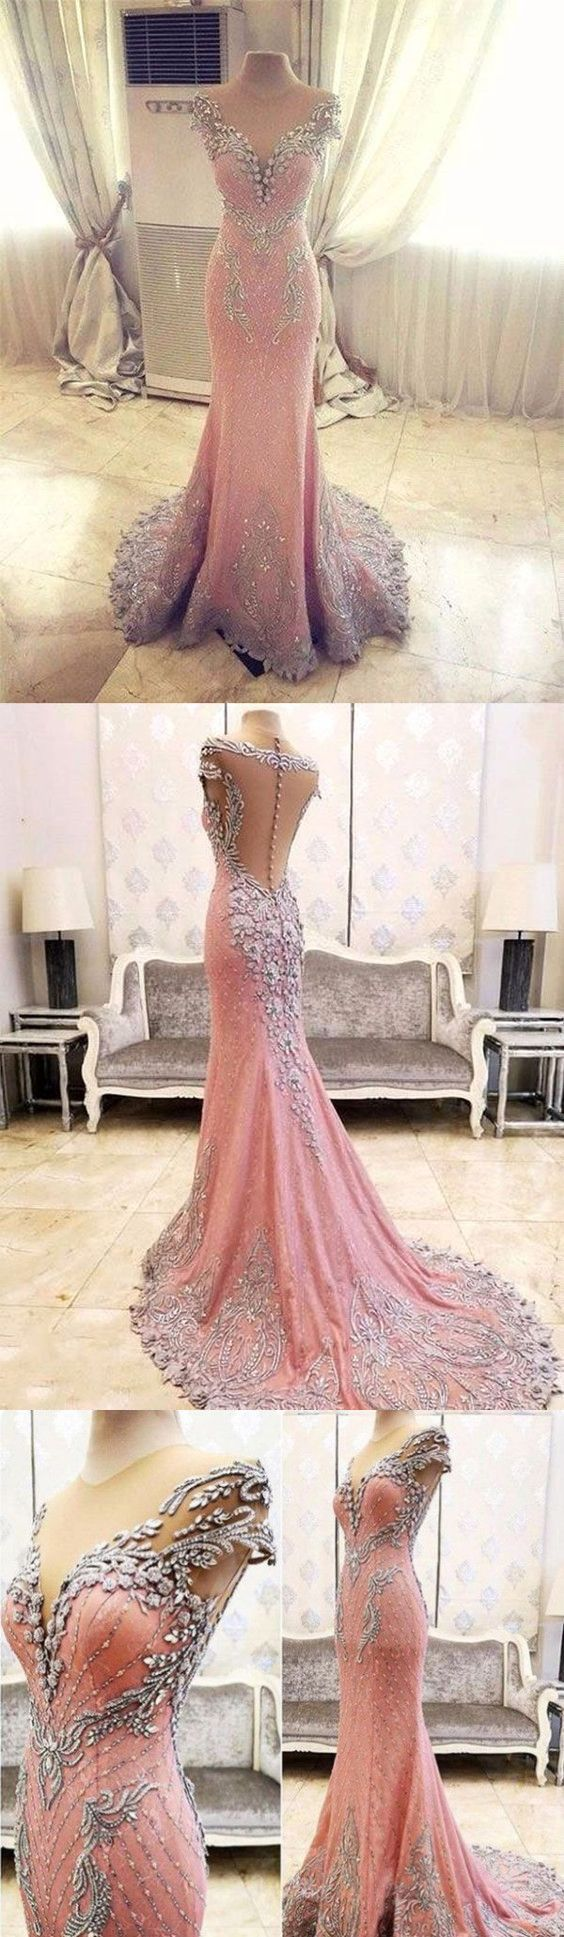 Luxury prom dressmermaid prom dressbackless prom dressfashion